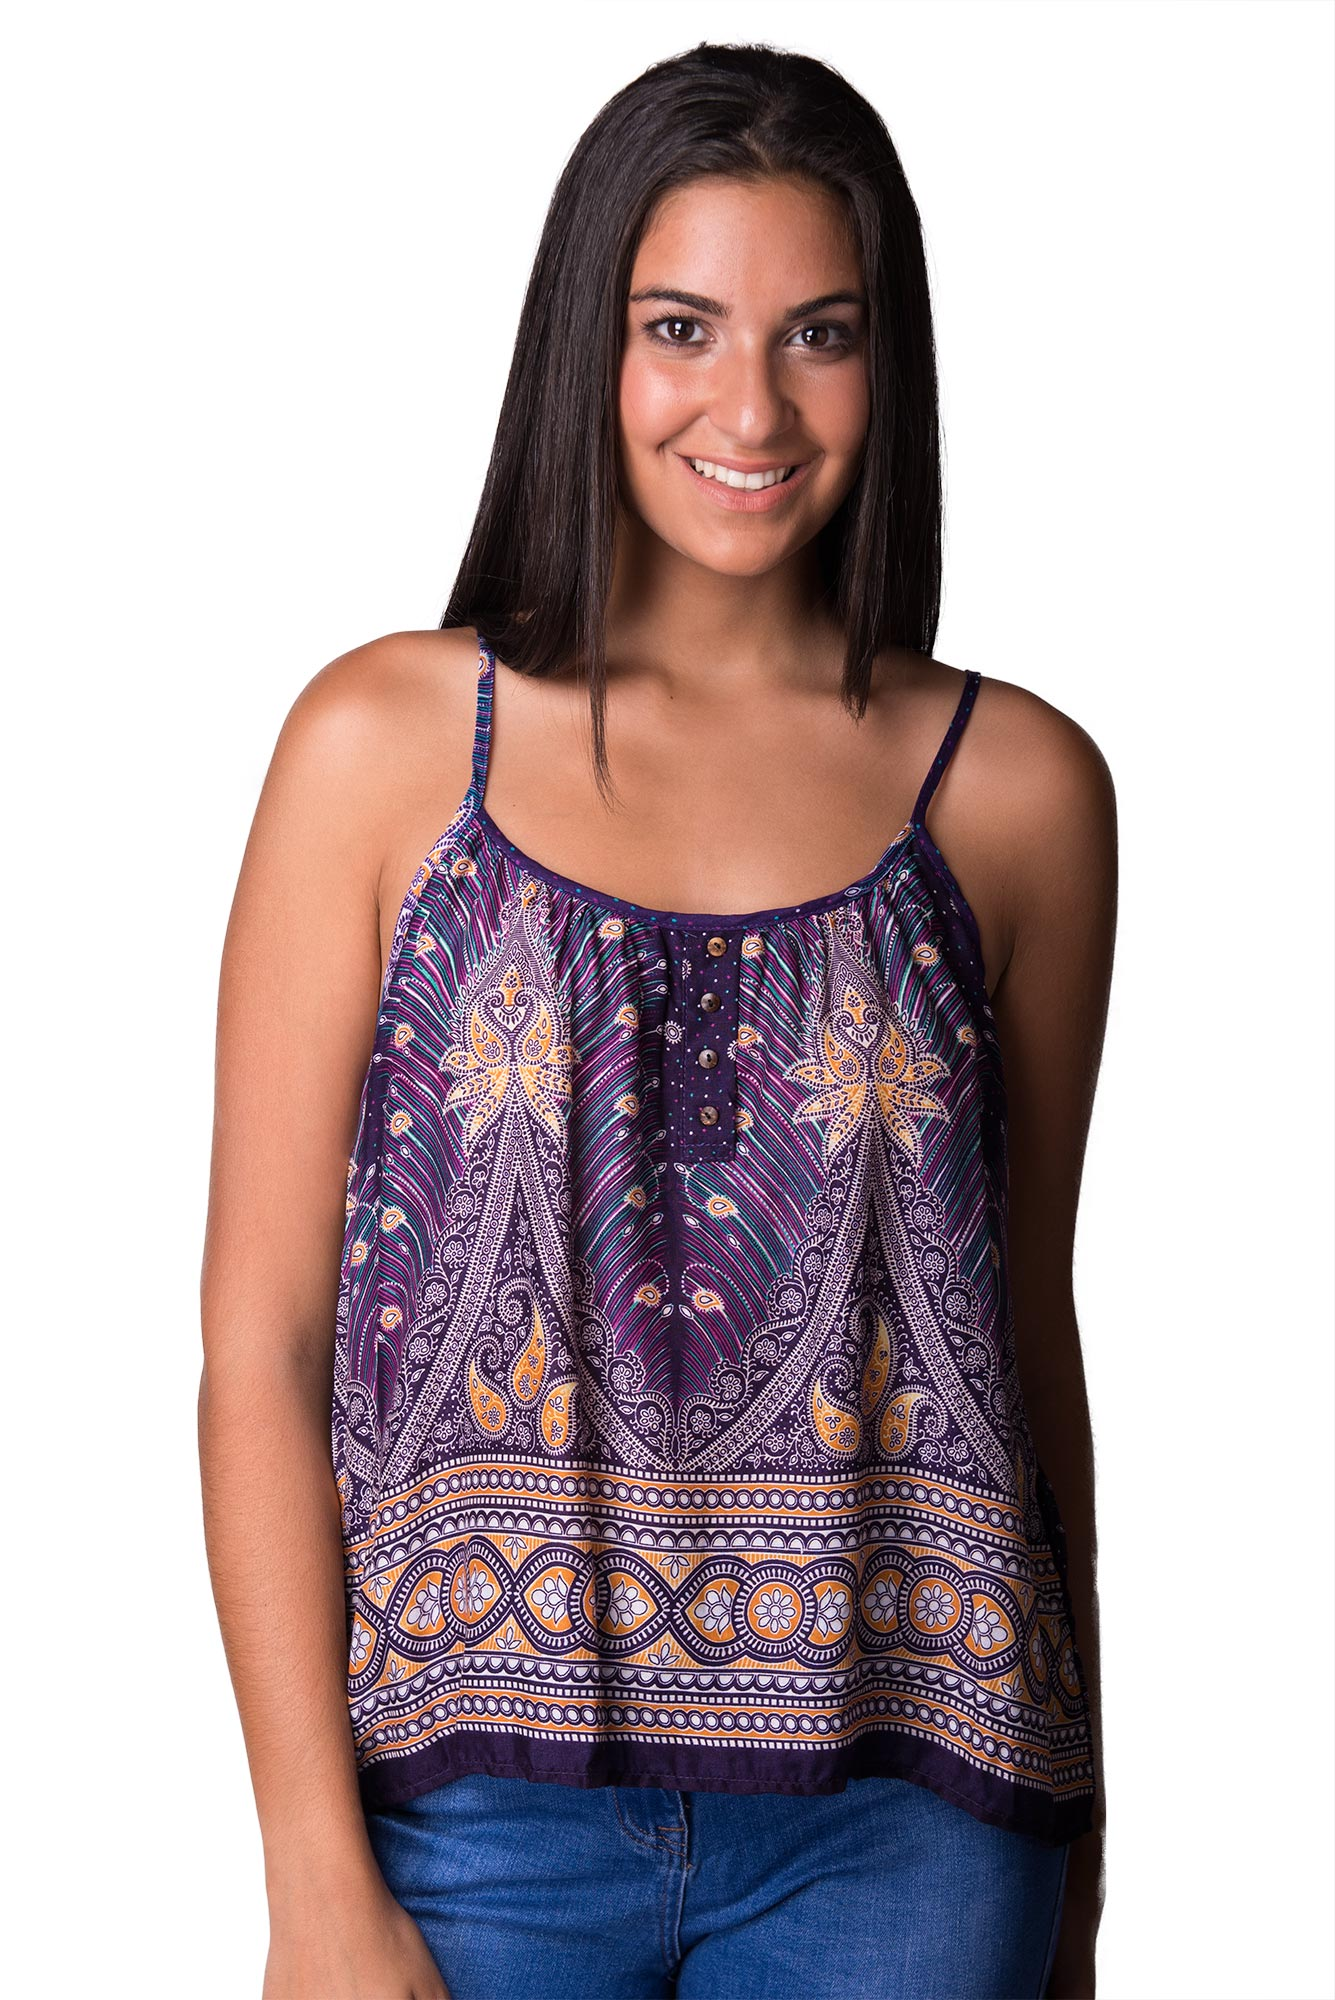 Peacock Print Cami Top - Red Multi - 4483R